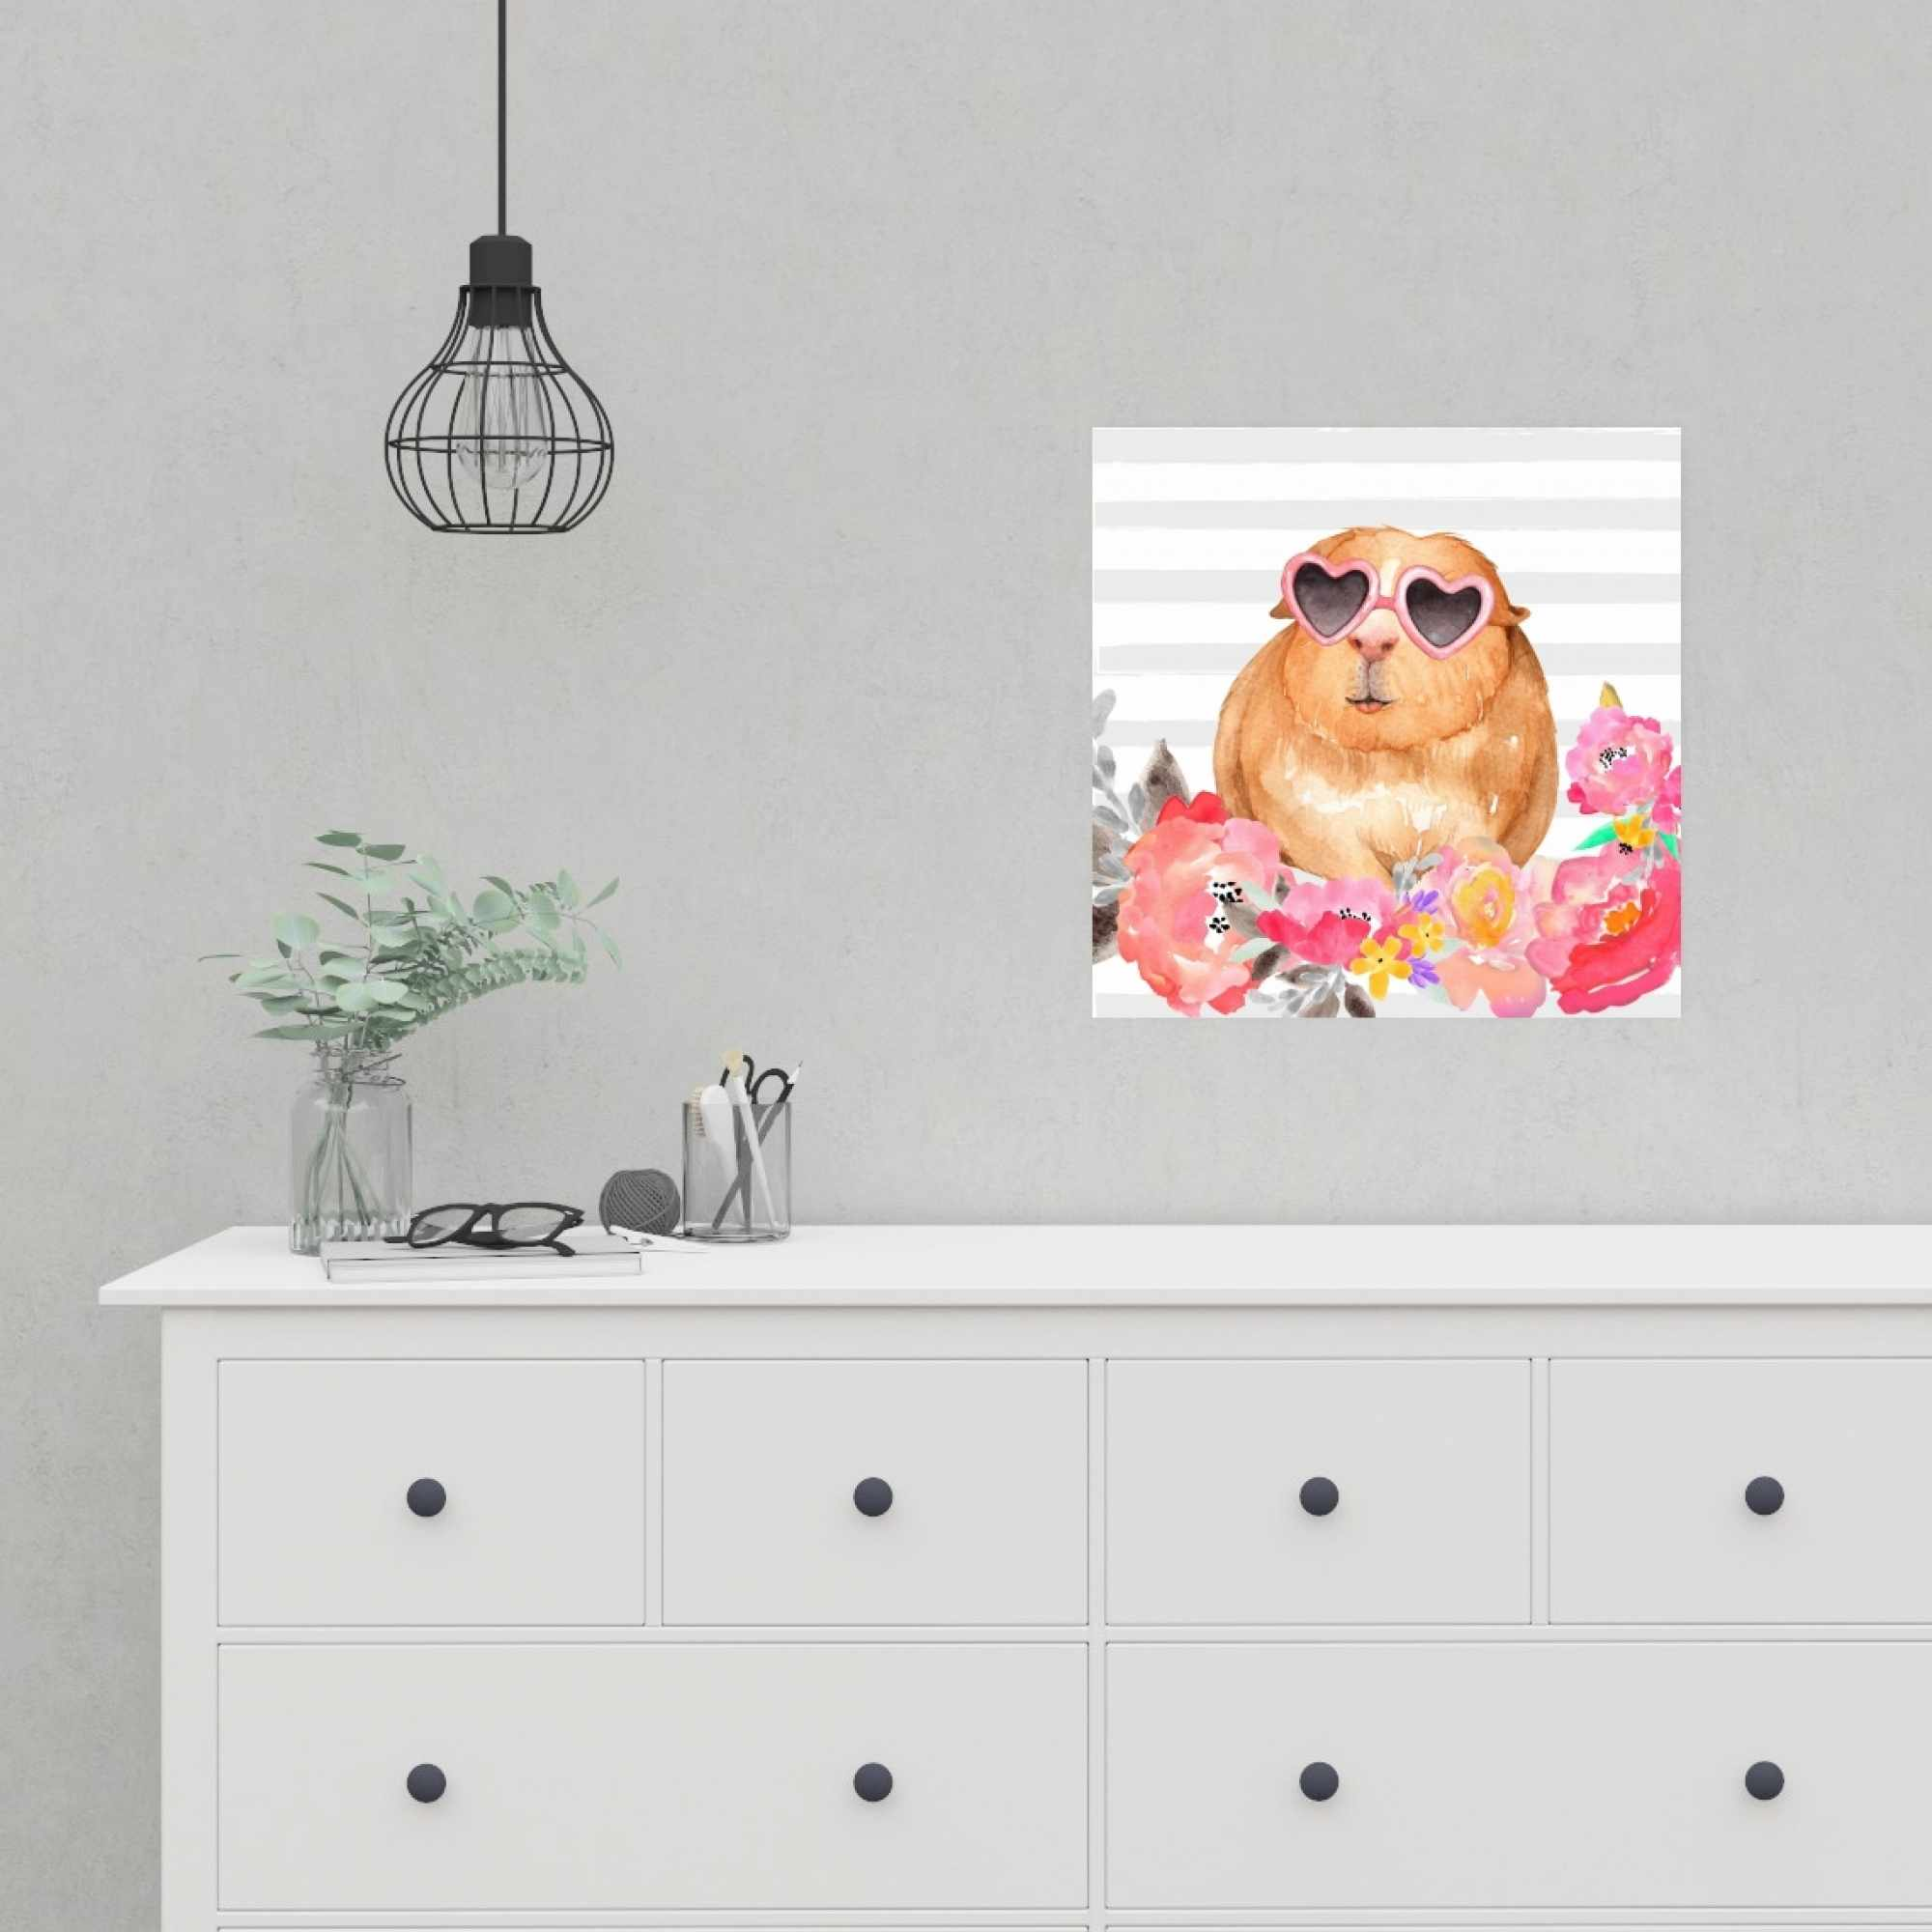 Poster 16 x 16 - Guinea pig with glasses